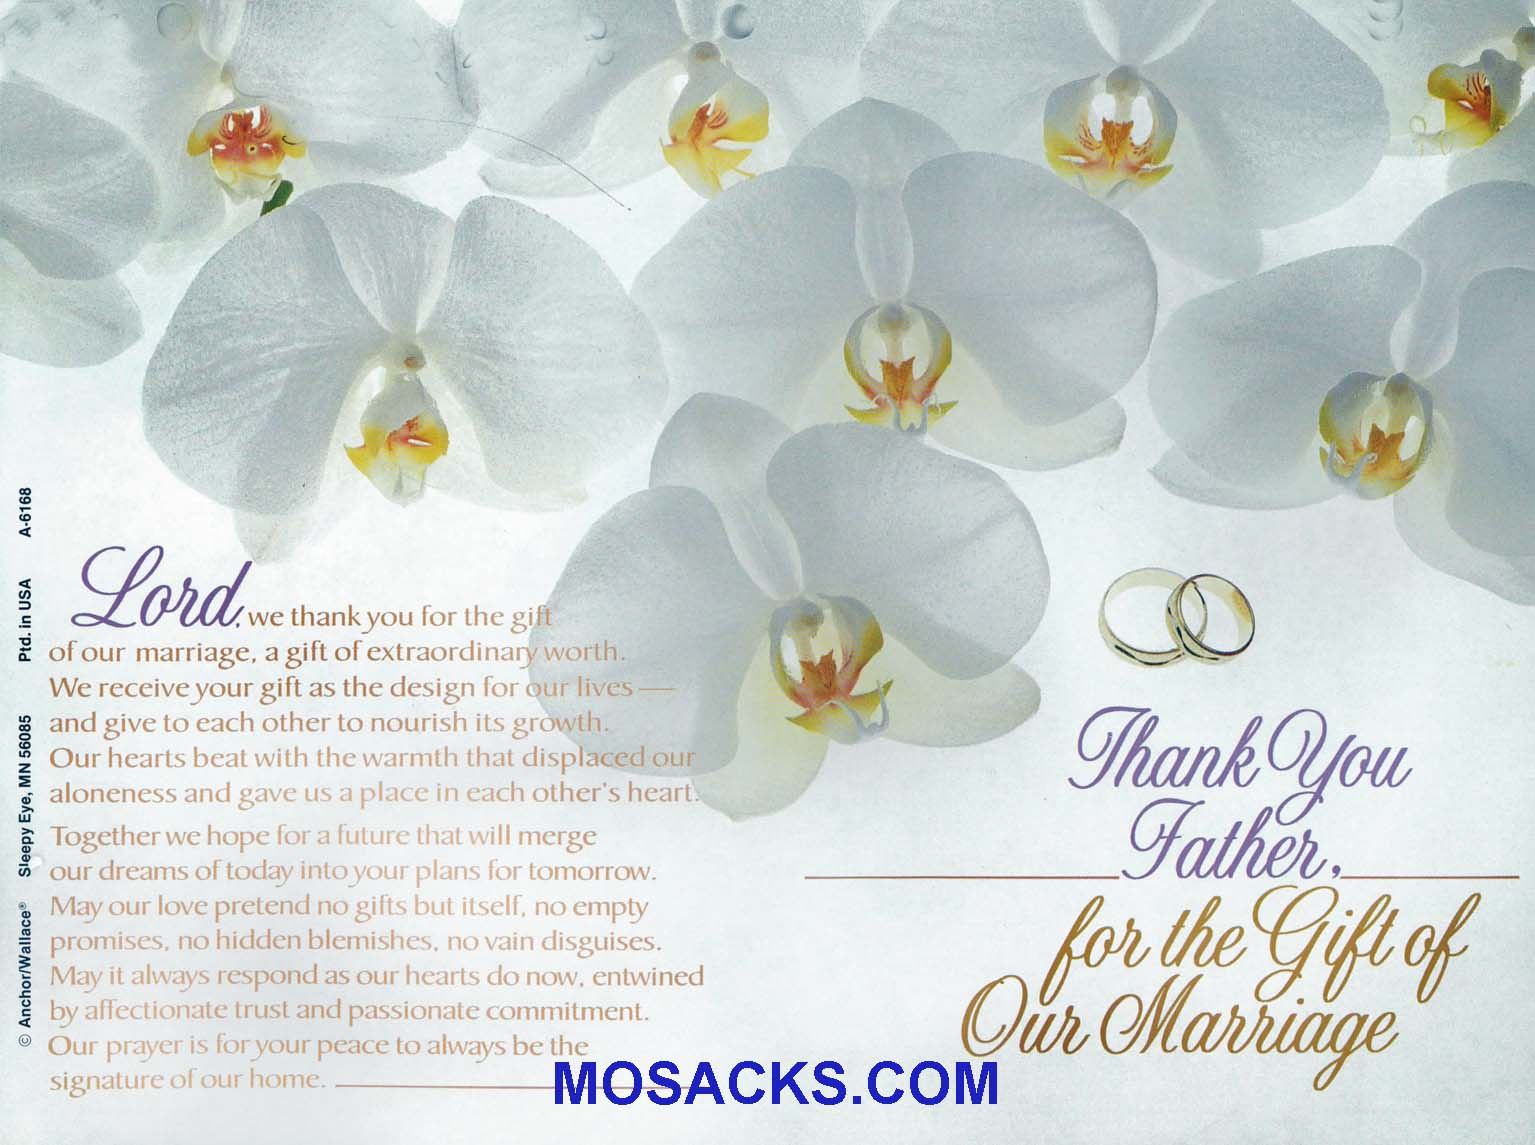 Wedding Bulletin Covers Thank You Father 100 Pack-A6168, Wedding Cover